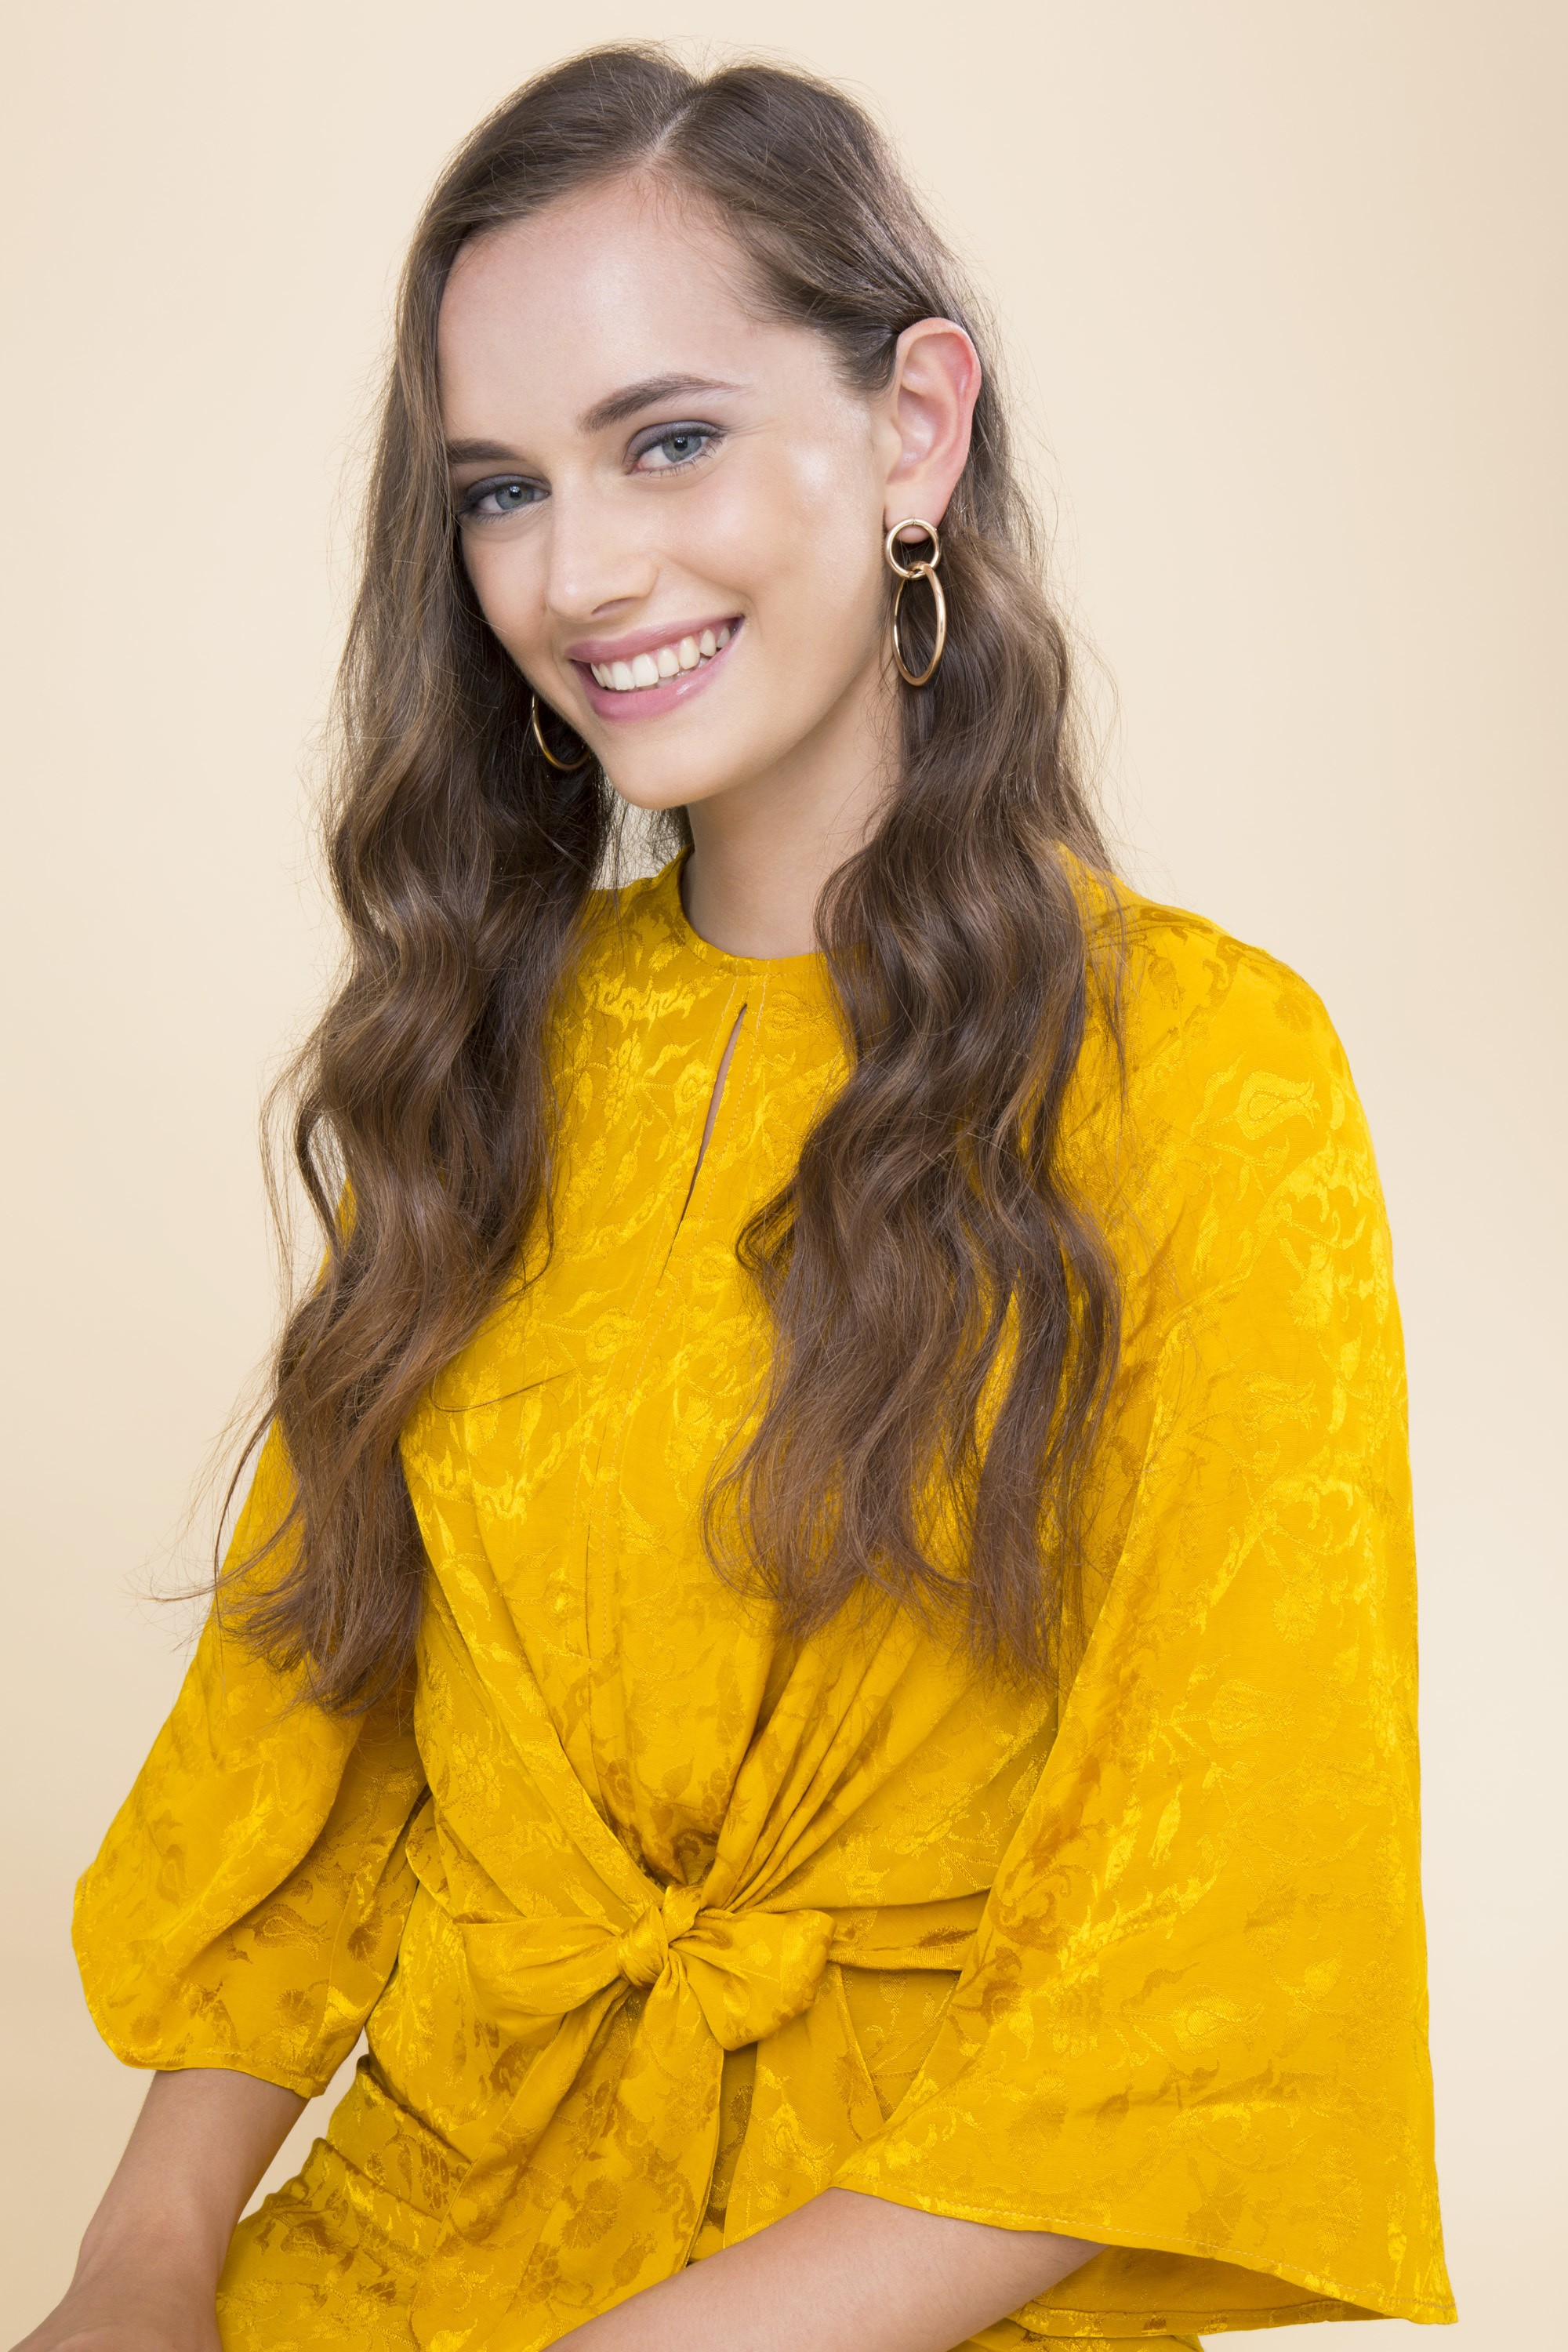 brunette woman in a yellow dress with wavy hair